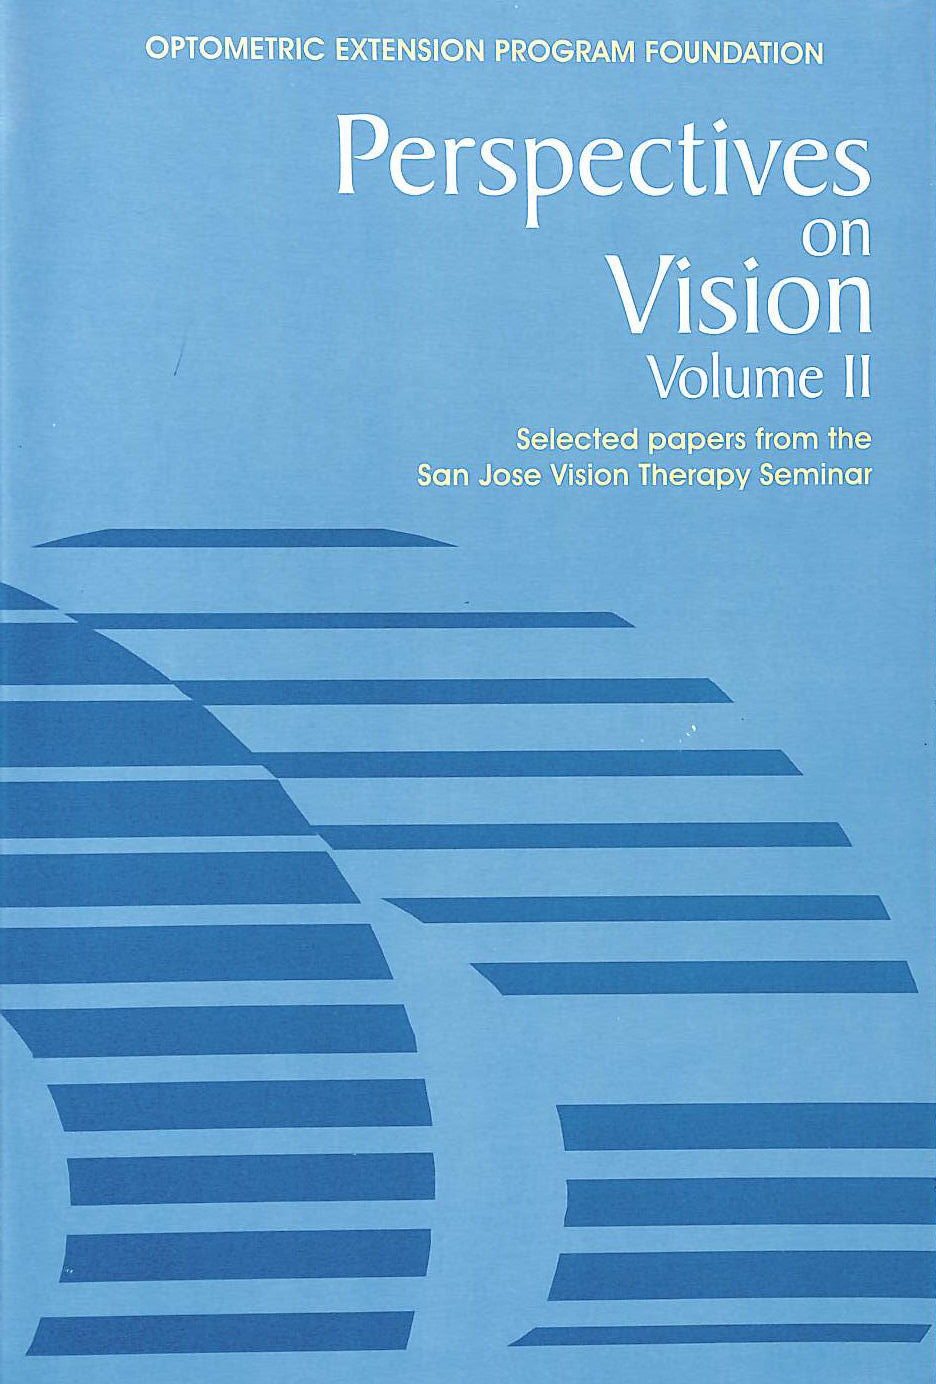 Image for Perspectives on Vision Volume II